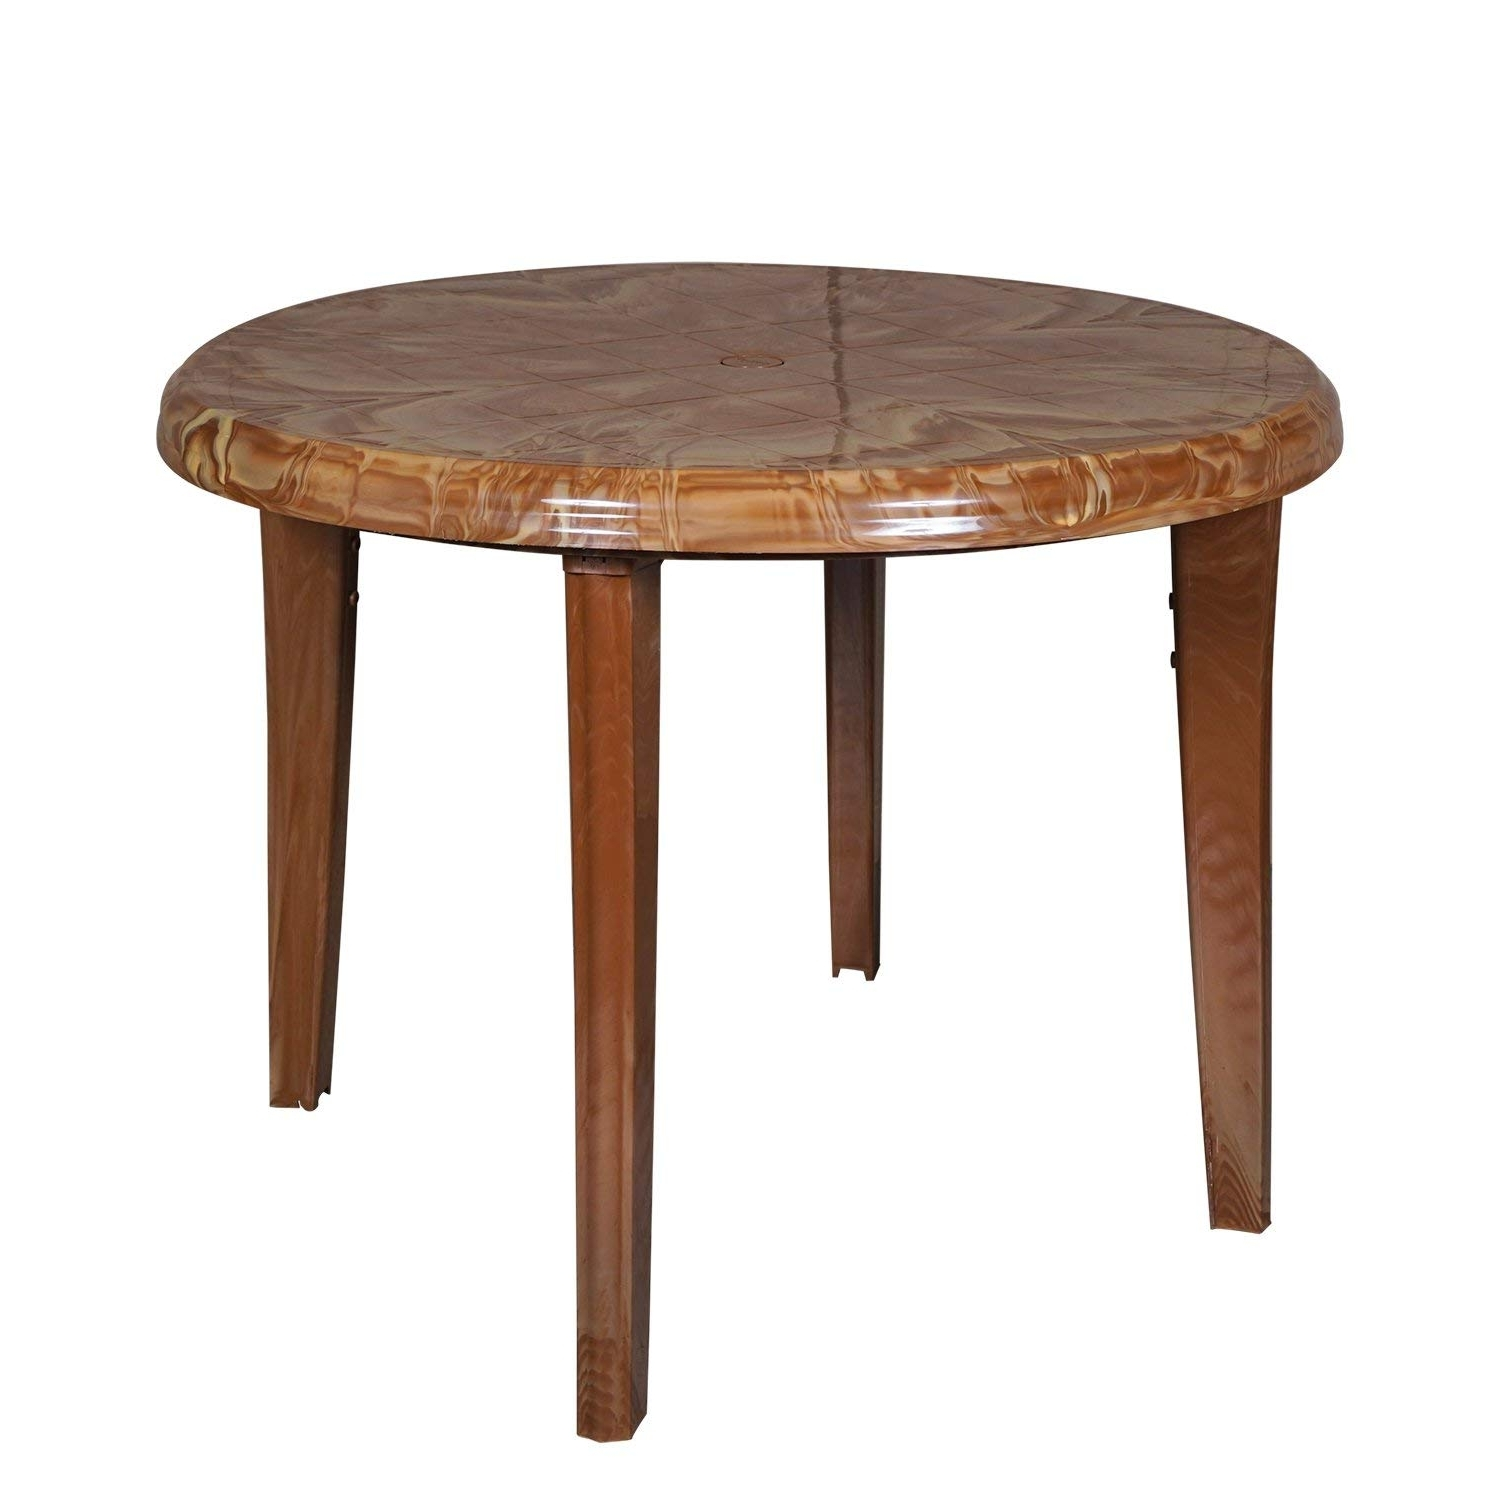 Dining Tables : Buy Dining Tables Online At Low Prices In India Throughout Most Recently Released Indian Dining Tables (Gallery 11 of 25)